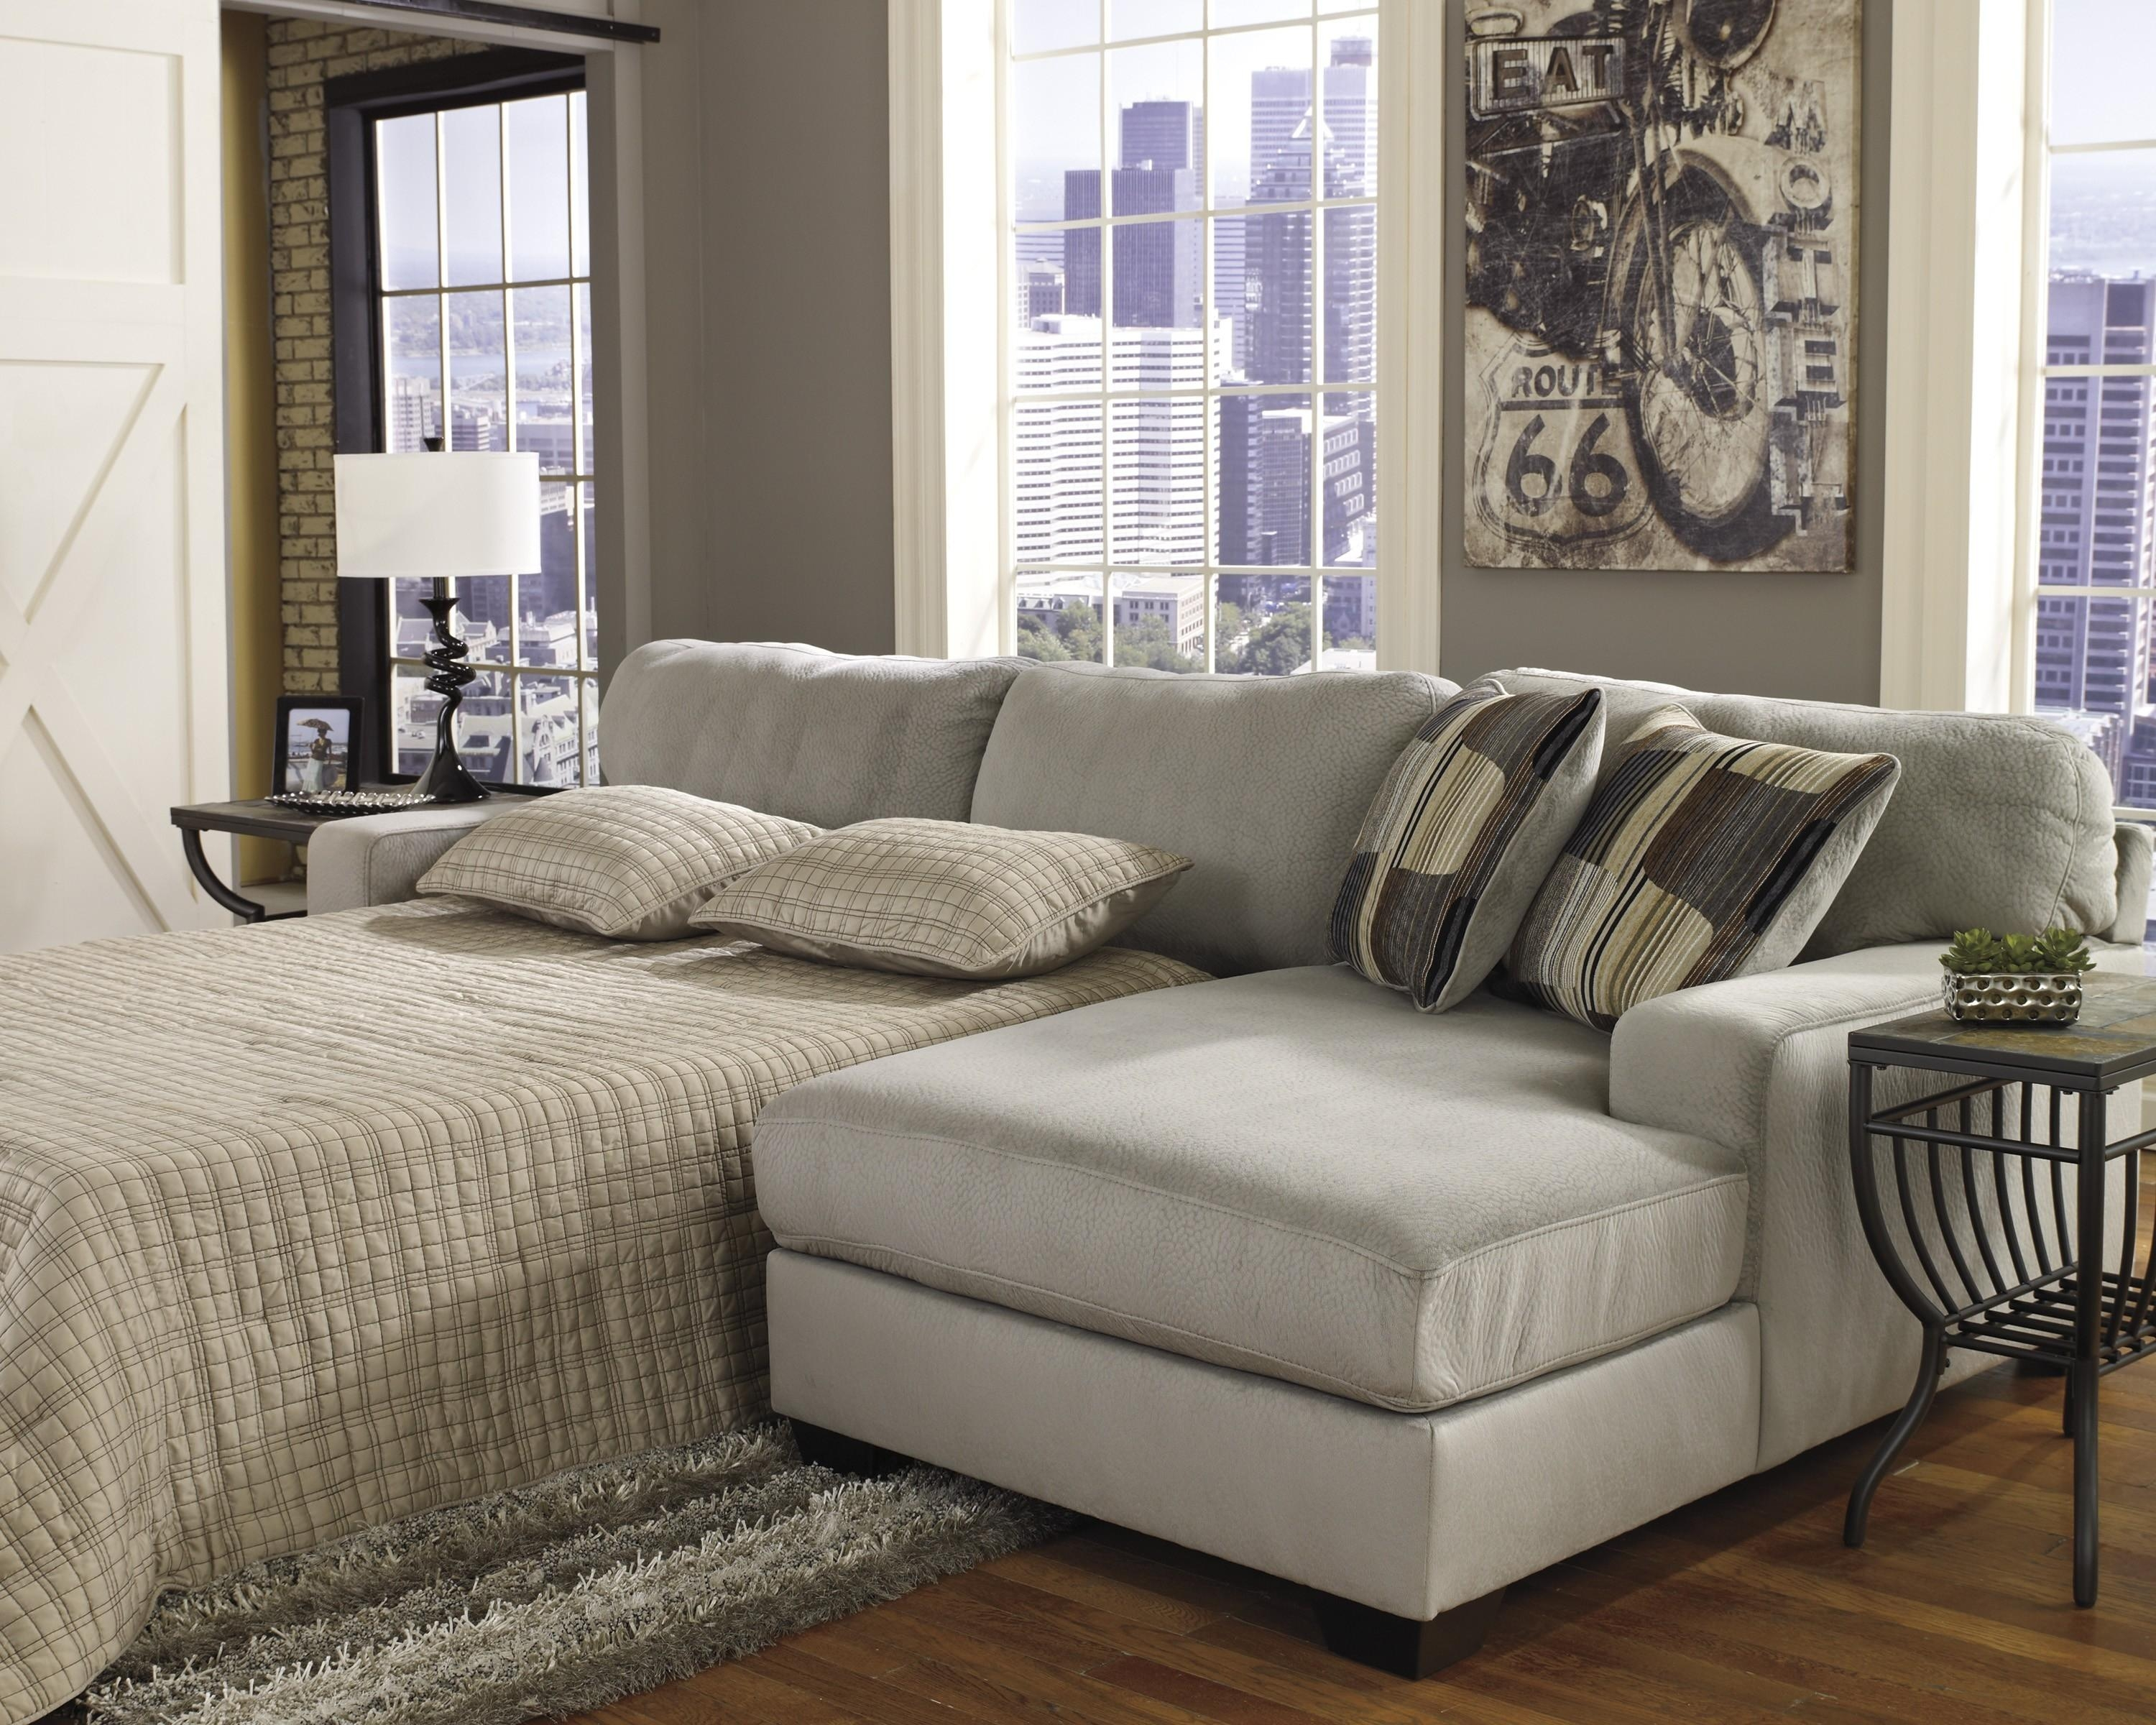 Cheap Leather Sectional Sleeper Sofa | Tehranmix Decoration For Sectional With Recliner And Sleeper (View 11 of 20)